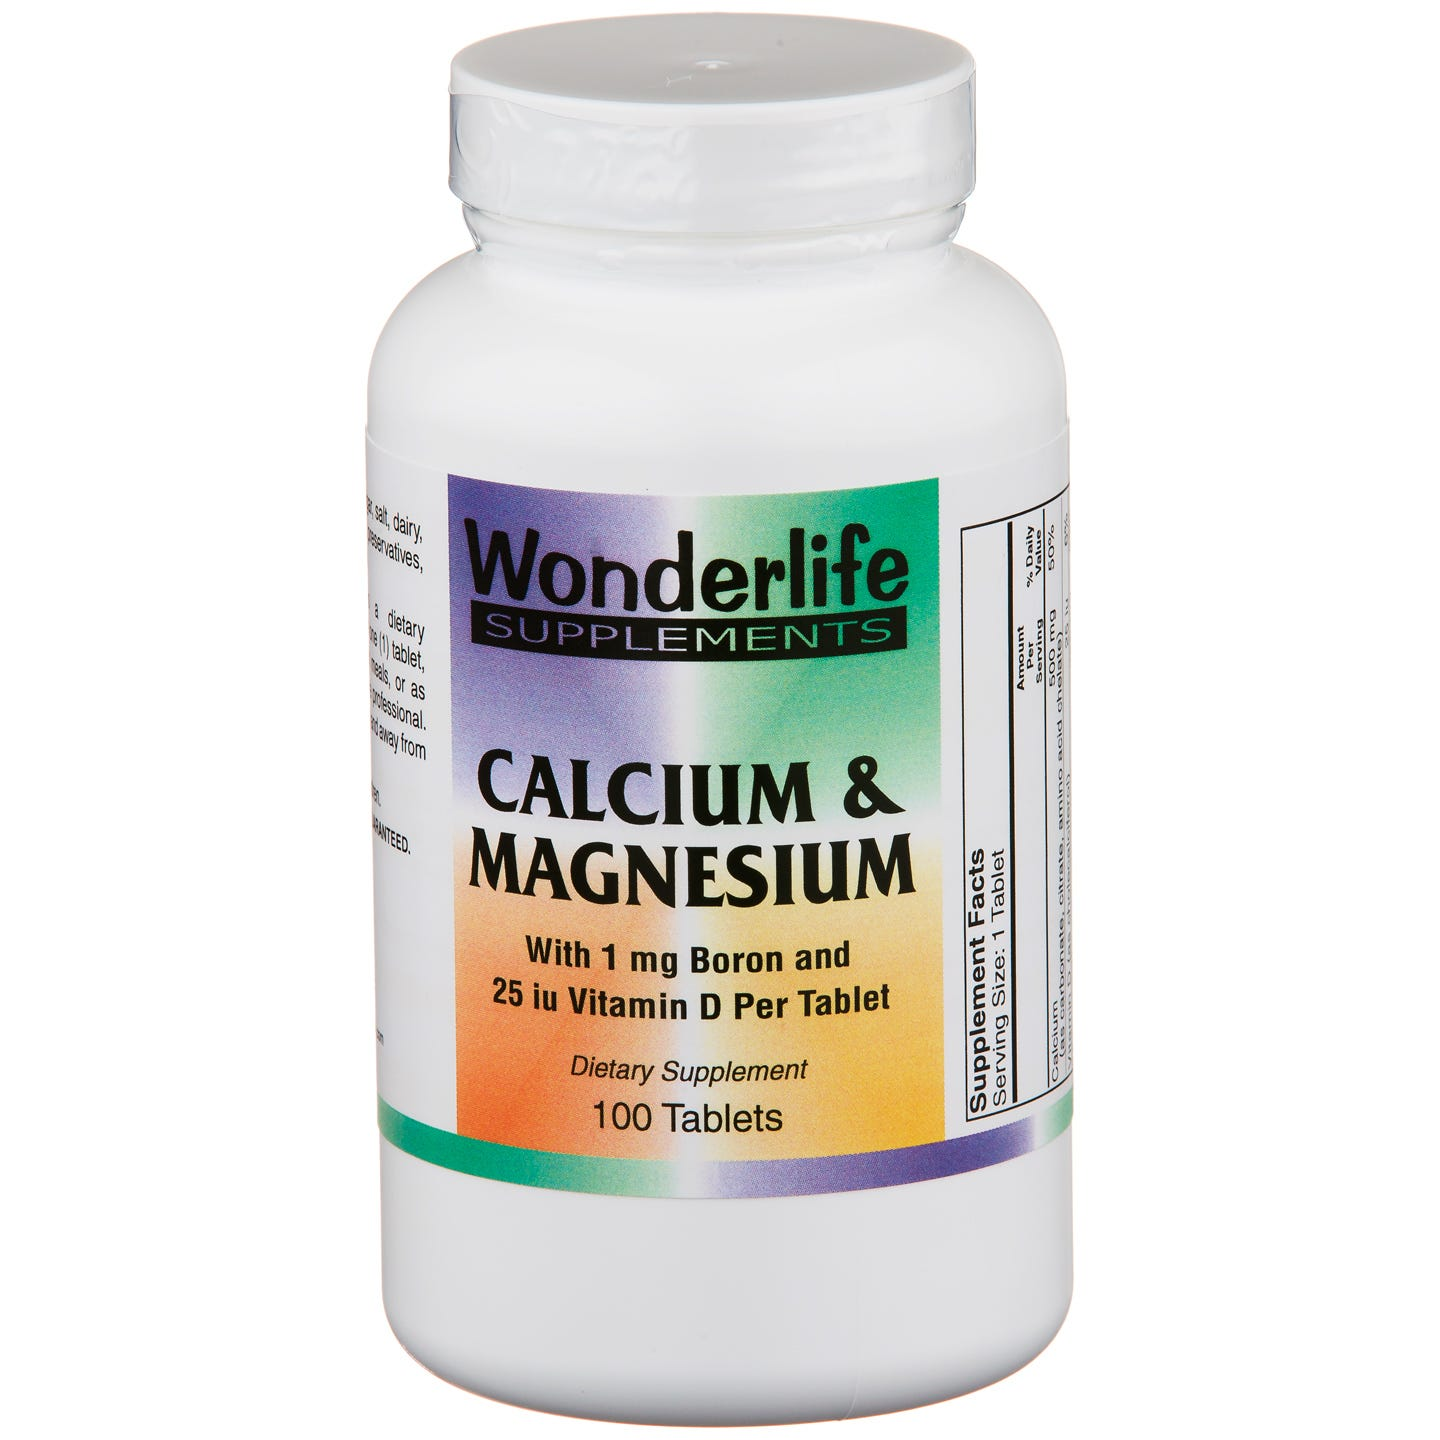 Calcium & Magnesium (100 ct) - Wonderlife - Rapid Diet Weight Loss Products Shop